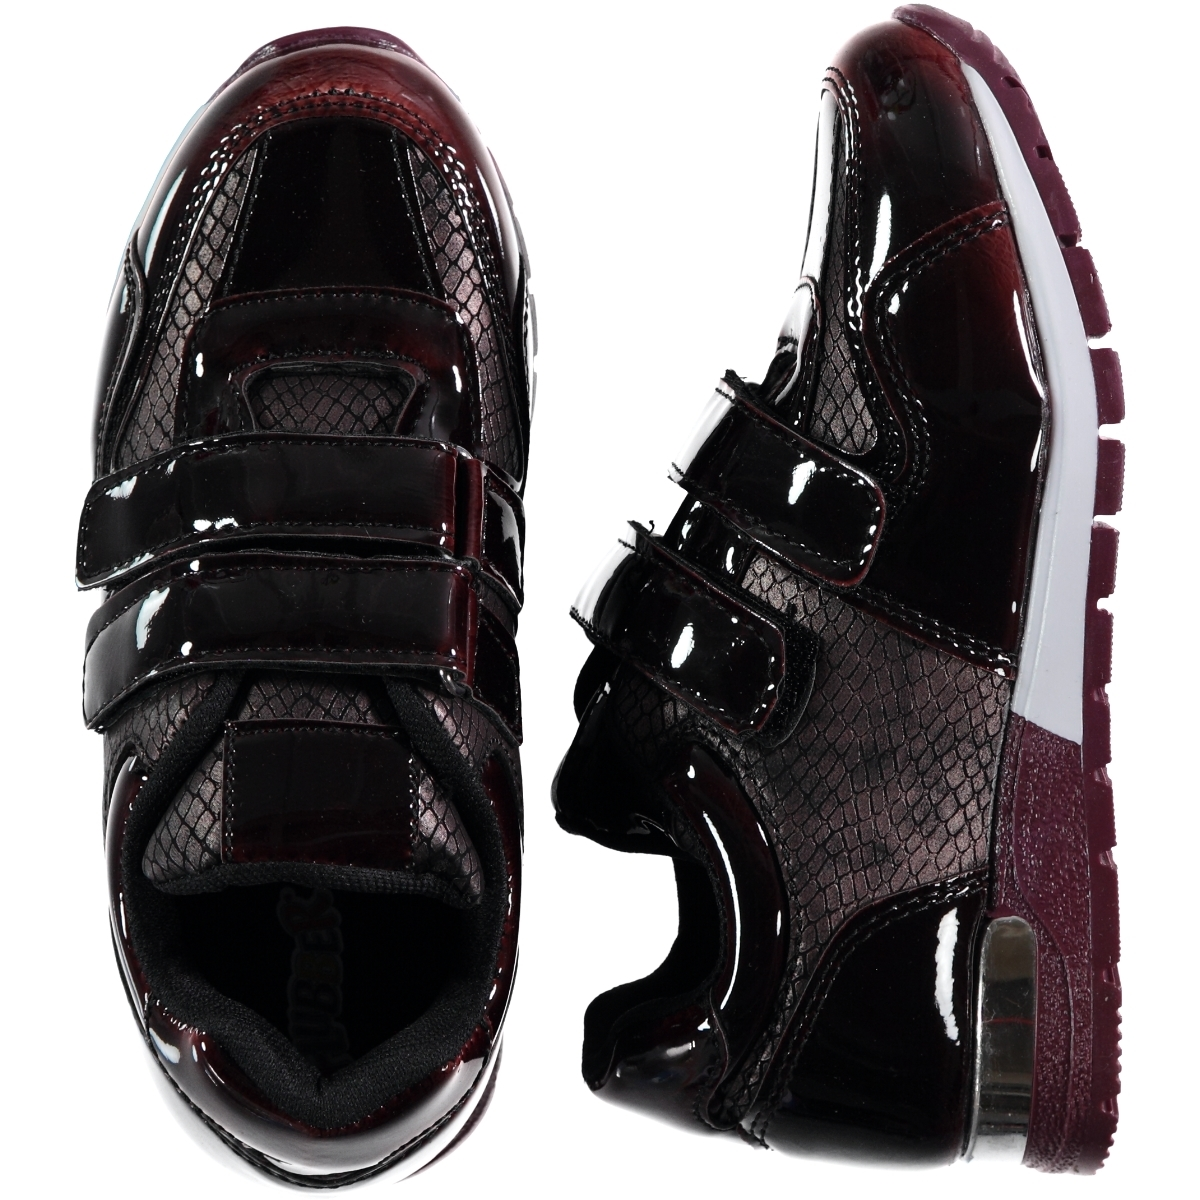 Flubber The Civil Numbers 31-35 Burgundy Sneaker Boy